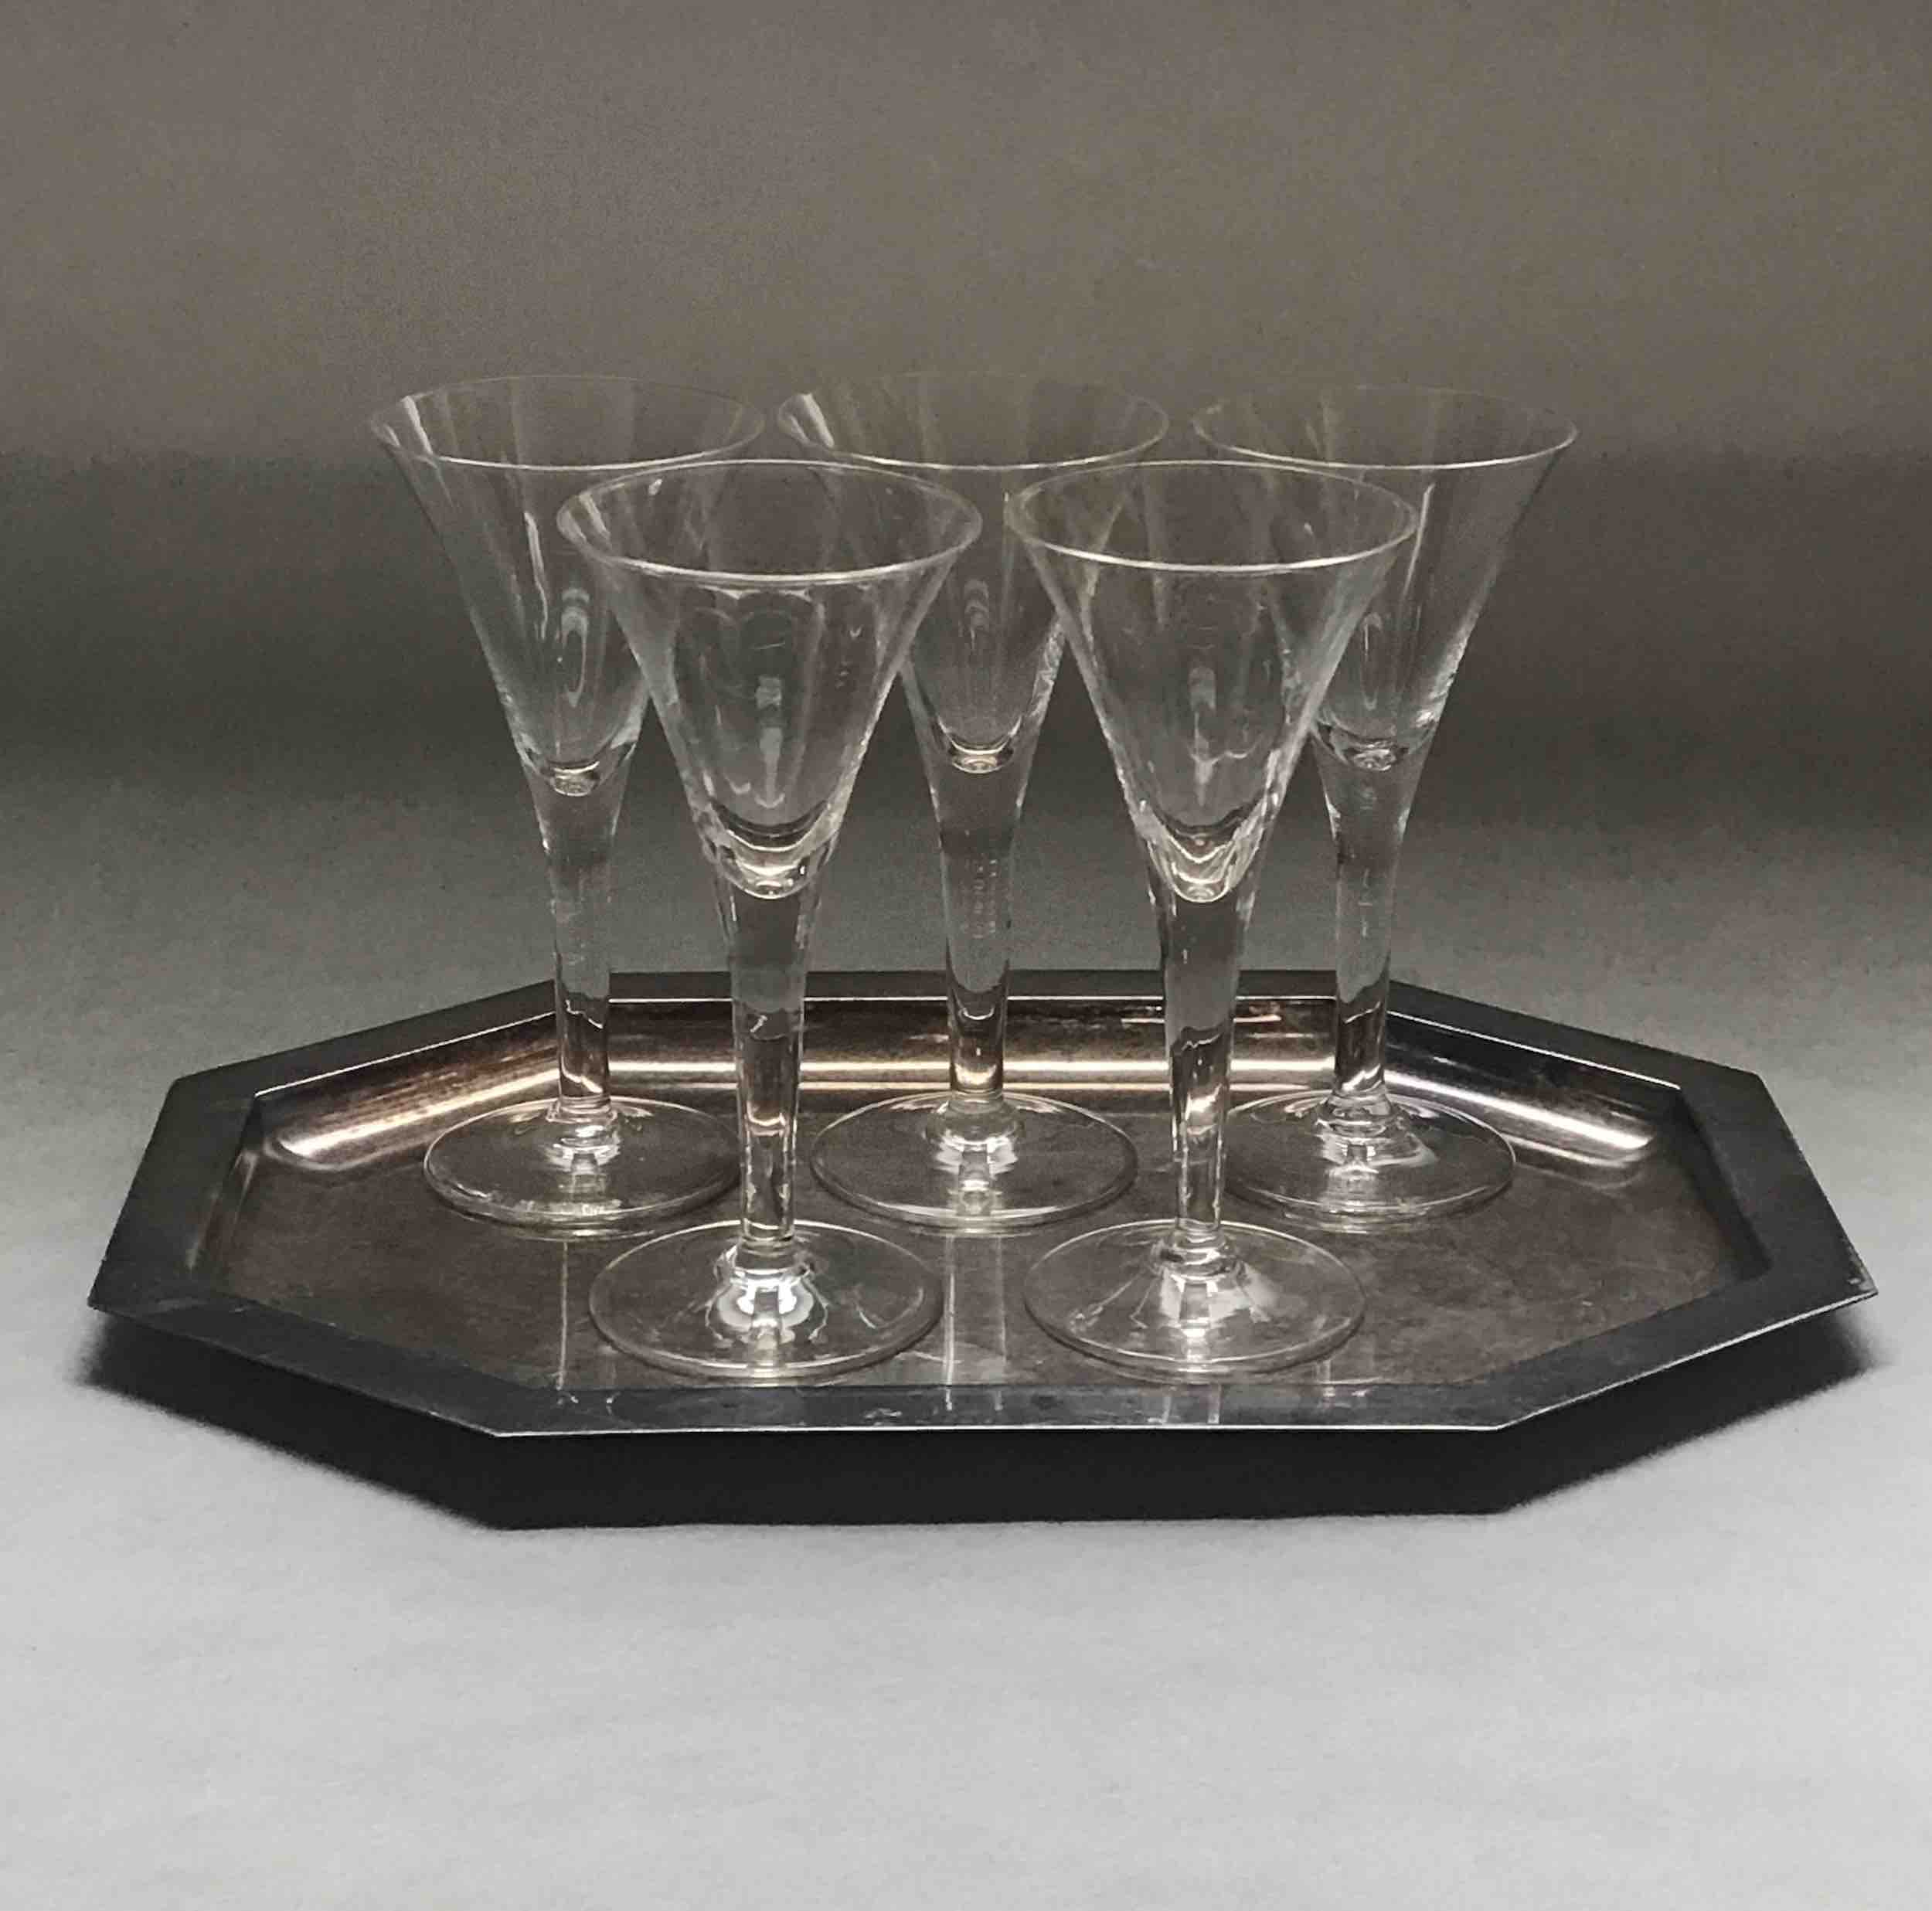 "#13: Five flutes on eight-sided silver tray. 6"" x 11.75"" x 8"""